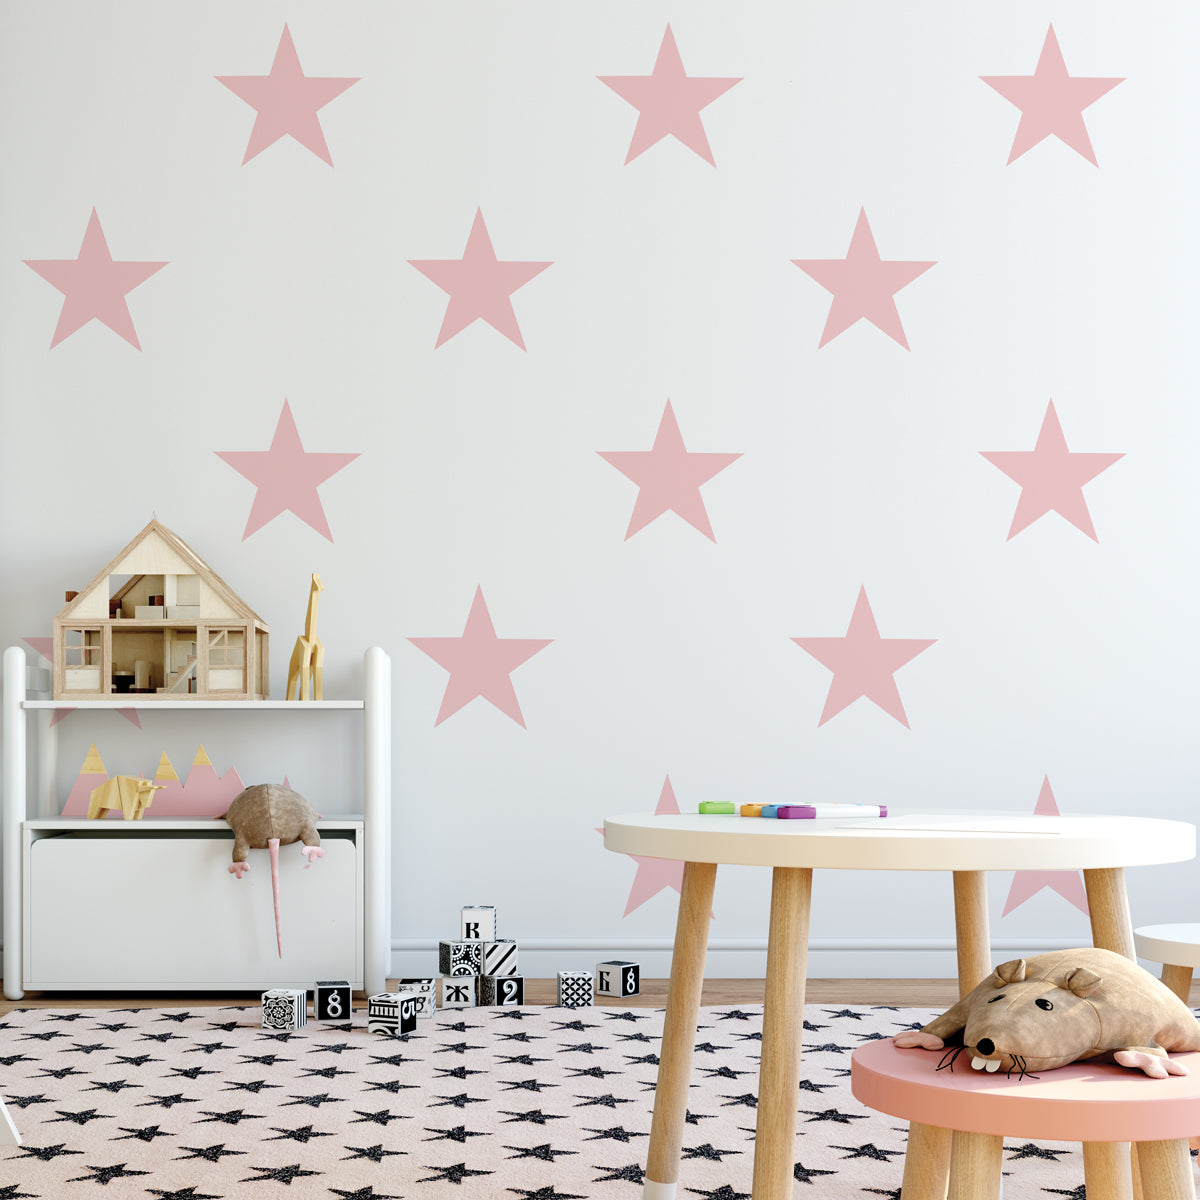 12 Large Star Wall Decals, 9 Inch, Millennial Pink, Navy Black Or White  Removable Reusable Eco Friendly Matte Fabric Wall Stickers